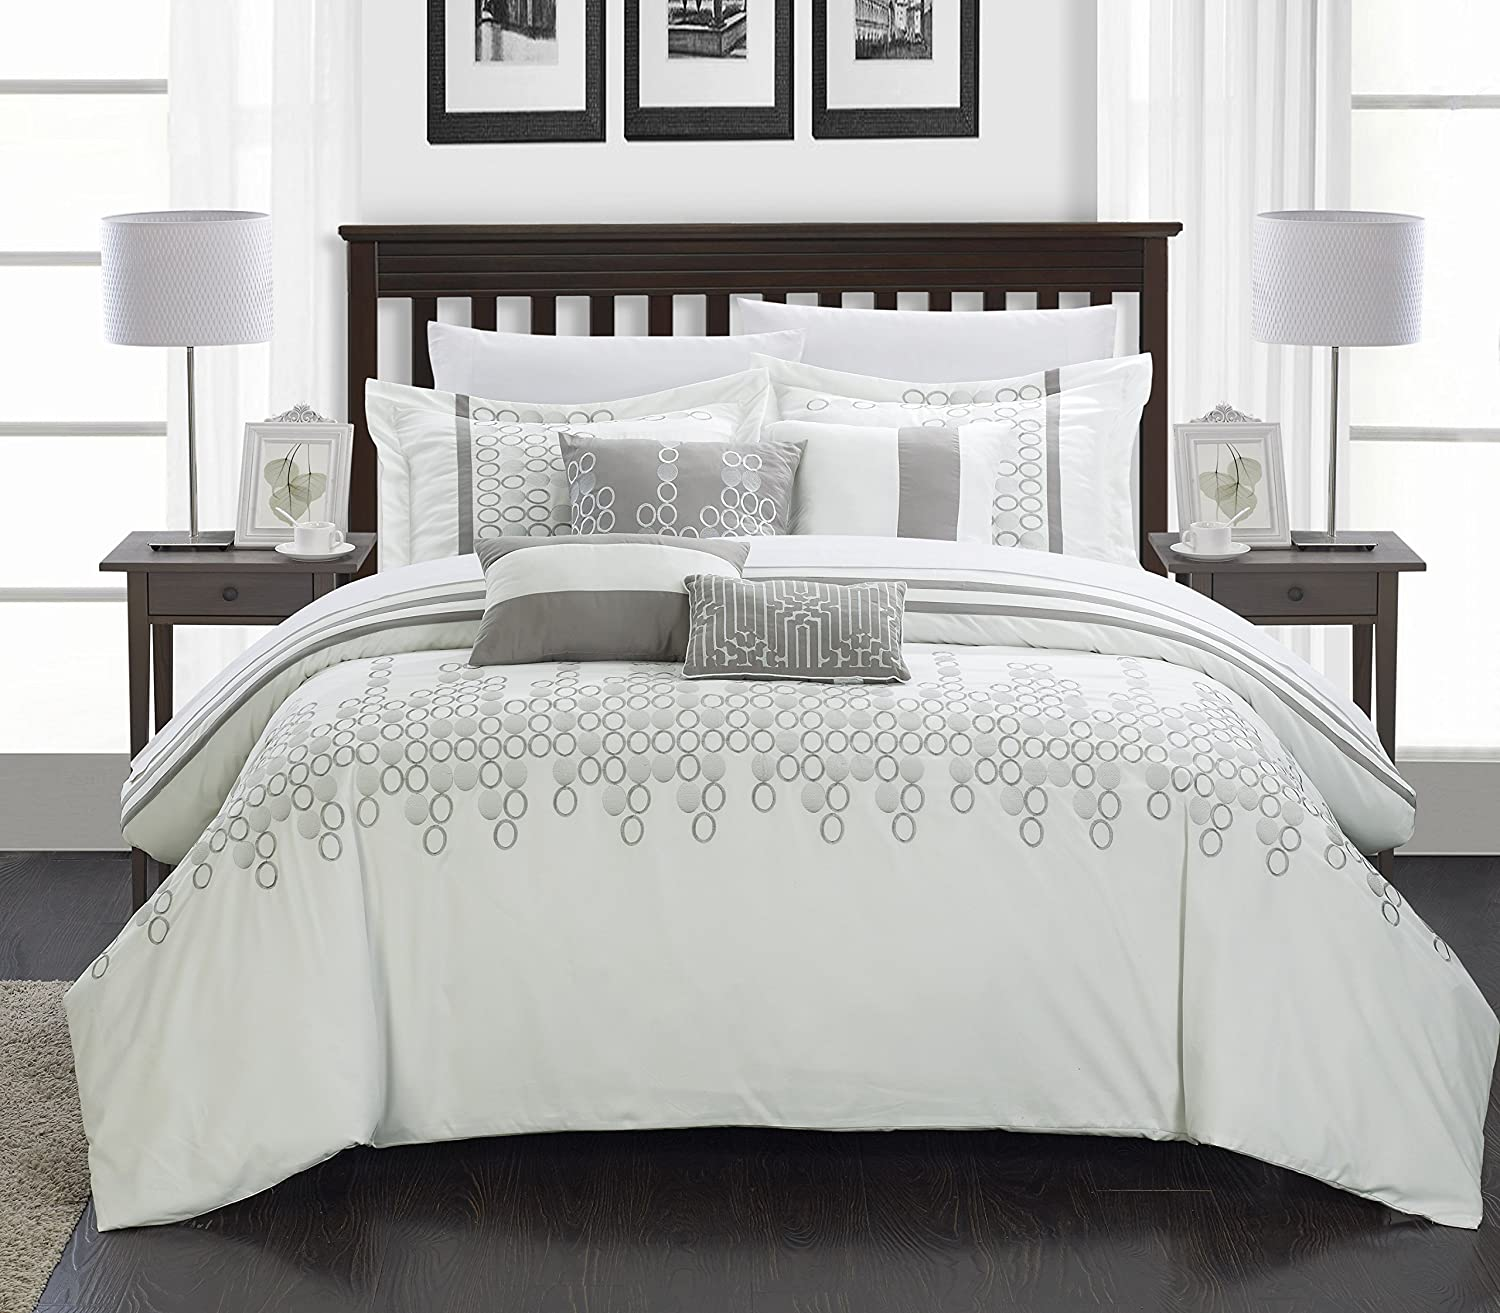 amazoncom chic home piece lauren contemporary comforter set  - amazoncom chic home piece lauren contemporary comforter set kingwhite home  kitchen